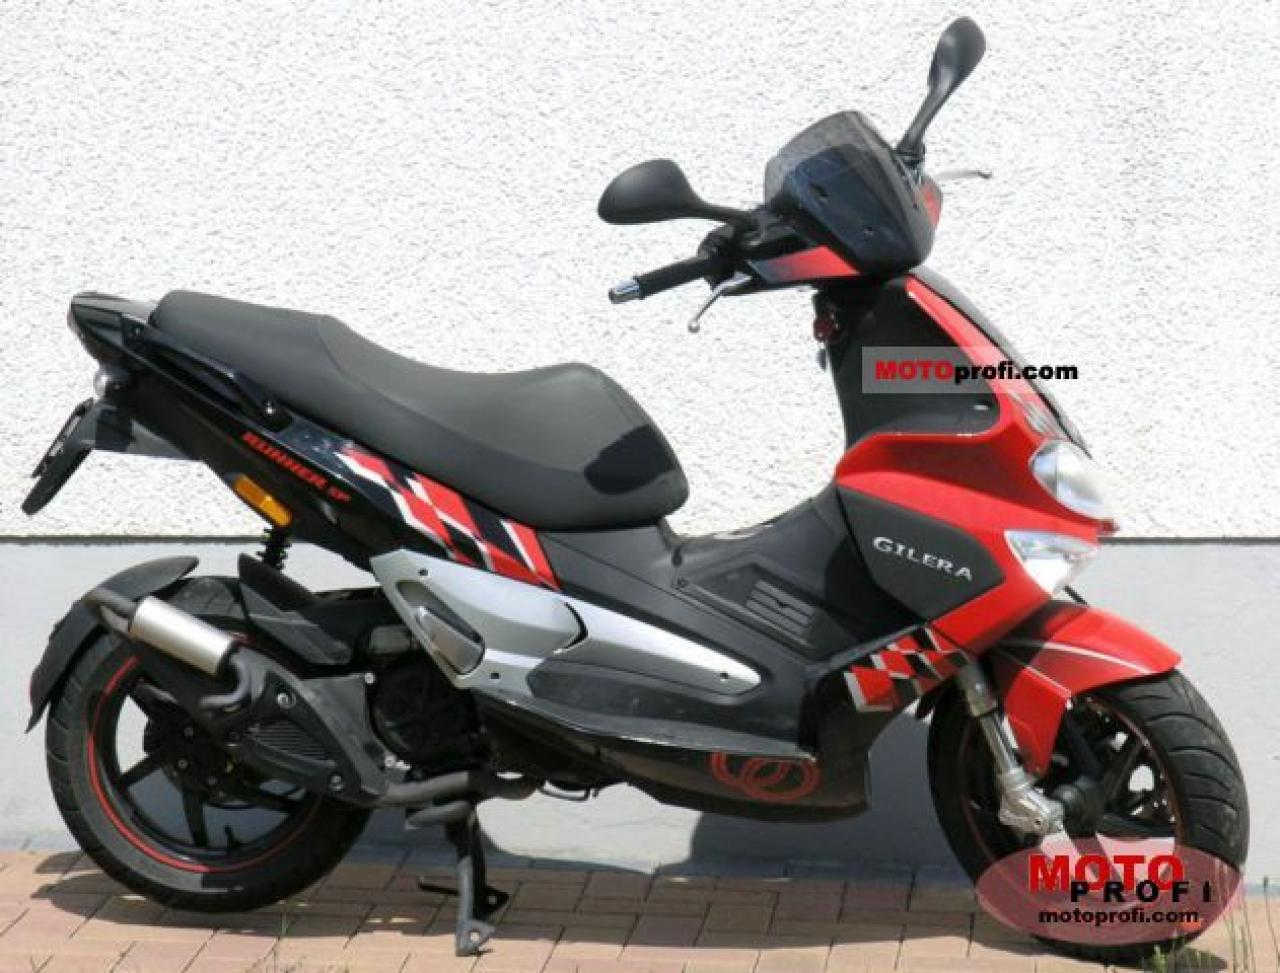 gilera runner sc 125 pics specs and list of seriess by year. Black Bedroom Furniture Sets. Home Design Ideas